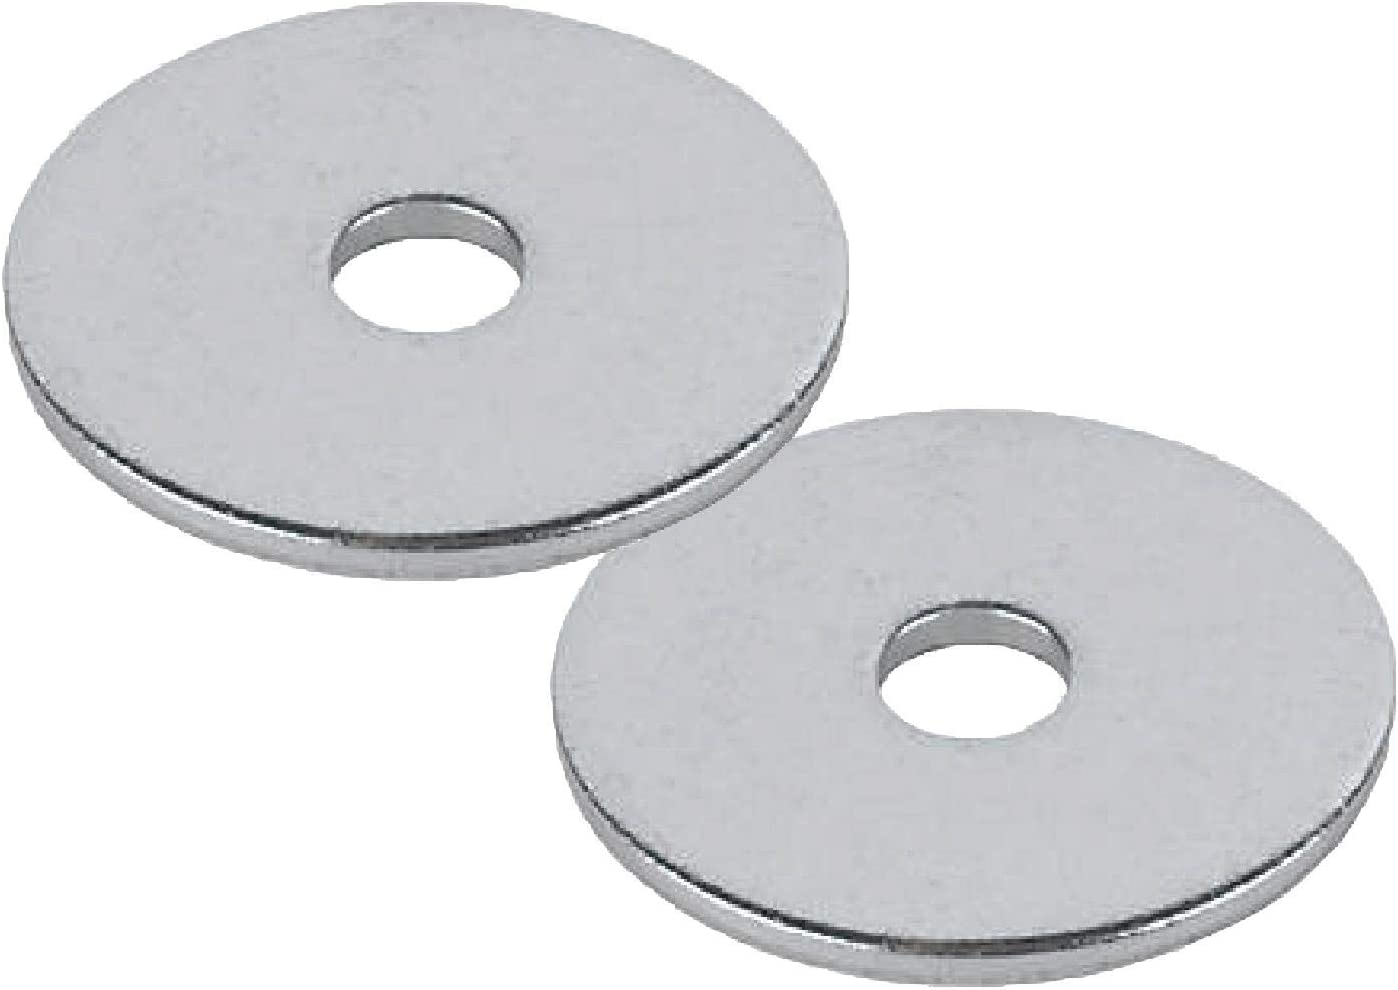 Form C 25 x Heavy Duty 12mm Washers Bright Zinc Plated for Nuts Bolts /& Screws